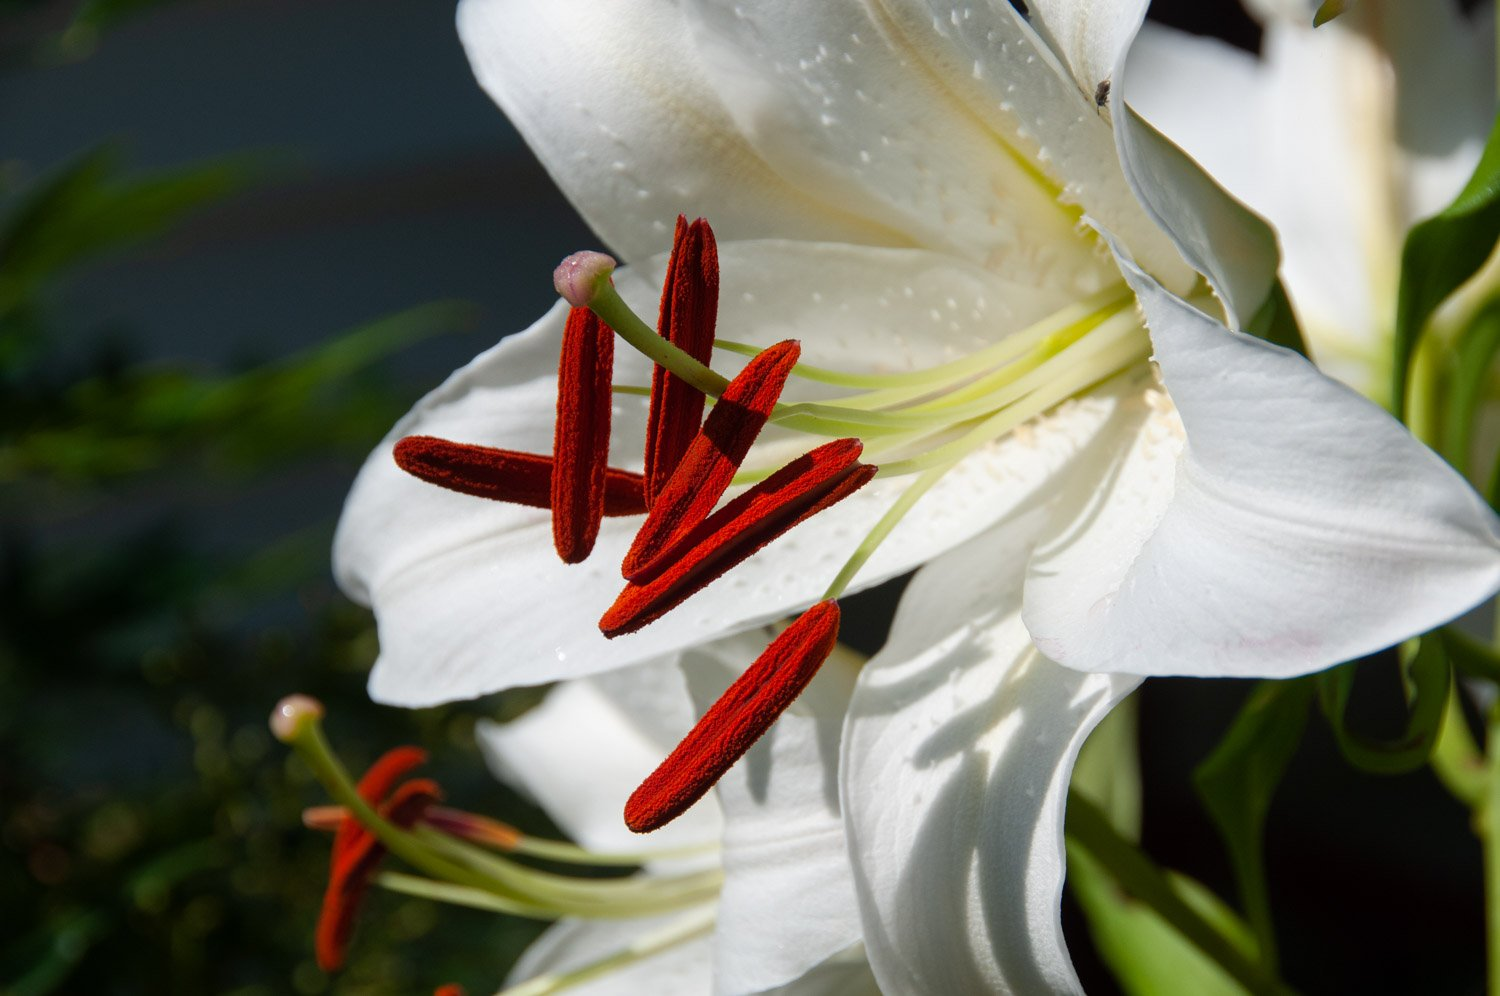 Closeup white bloom of an Oriental Lily 'Casa Blanca' with red pollen anthers